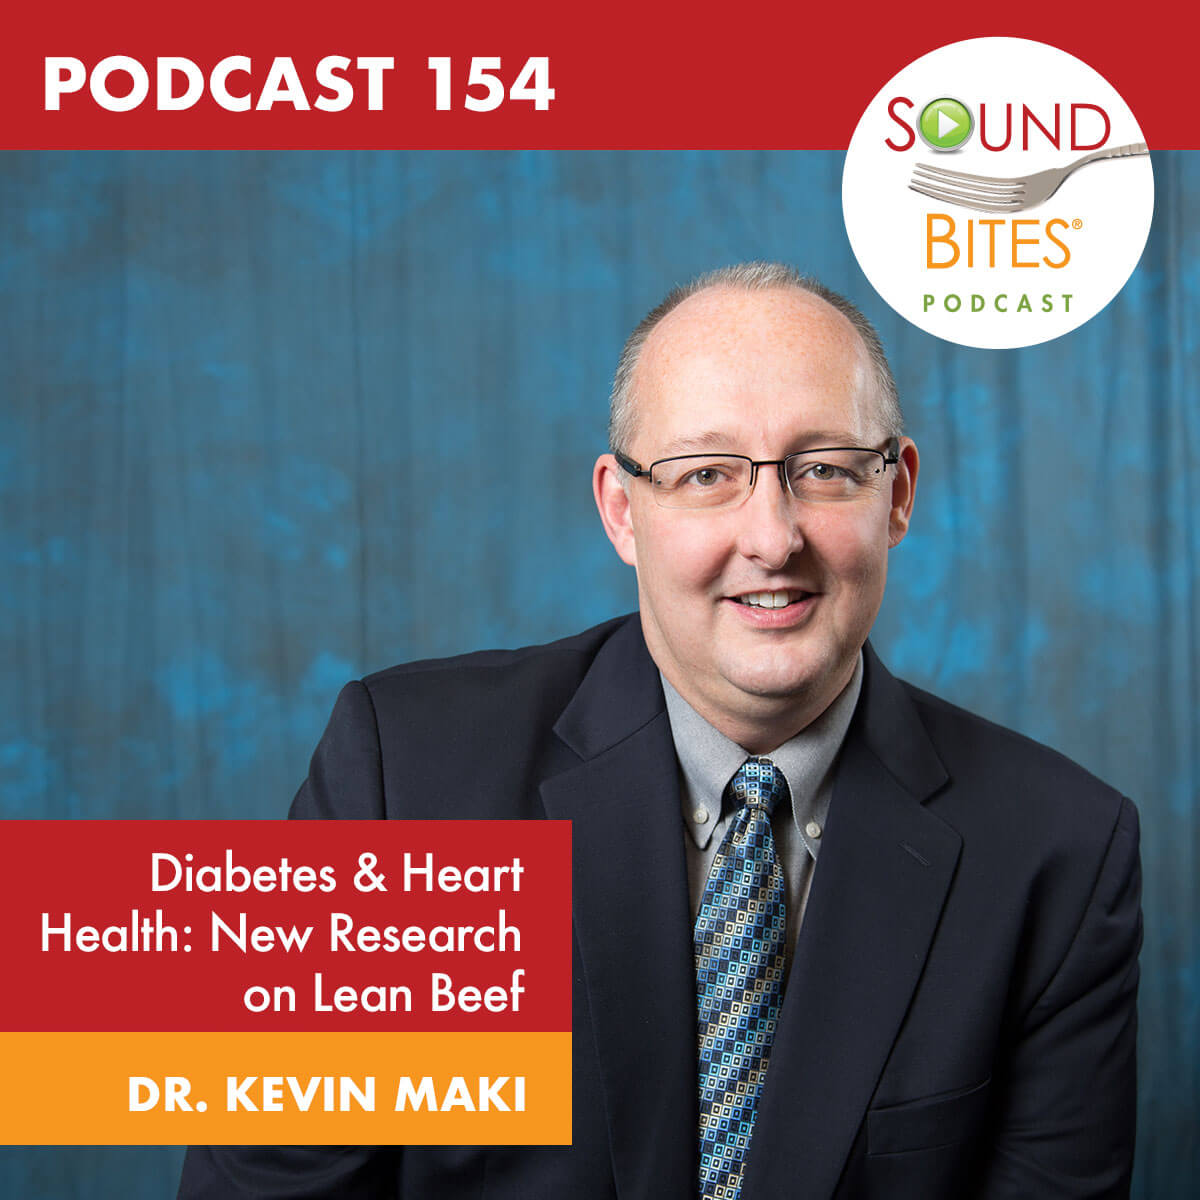 Podcast 154 - Diabetes & Heart Health: New Research on Lean Beef – Dr. Kevin Maki